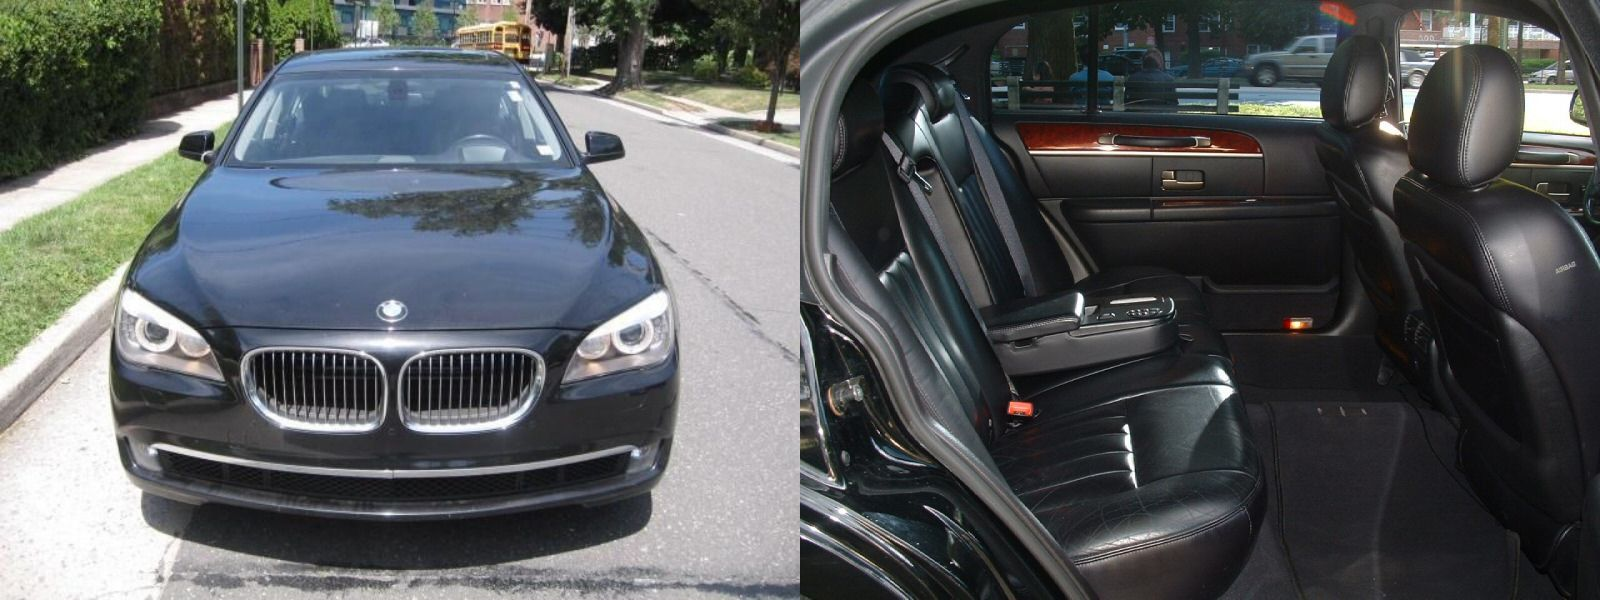 Amazing limo services in nyc by us bargain limo httpwww